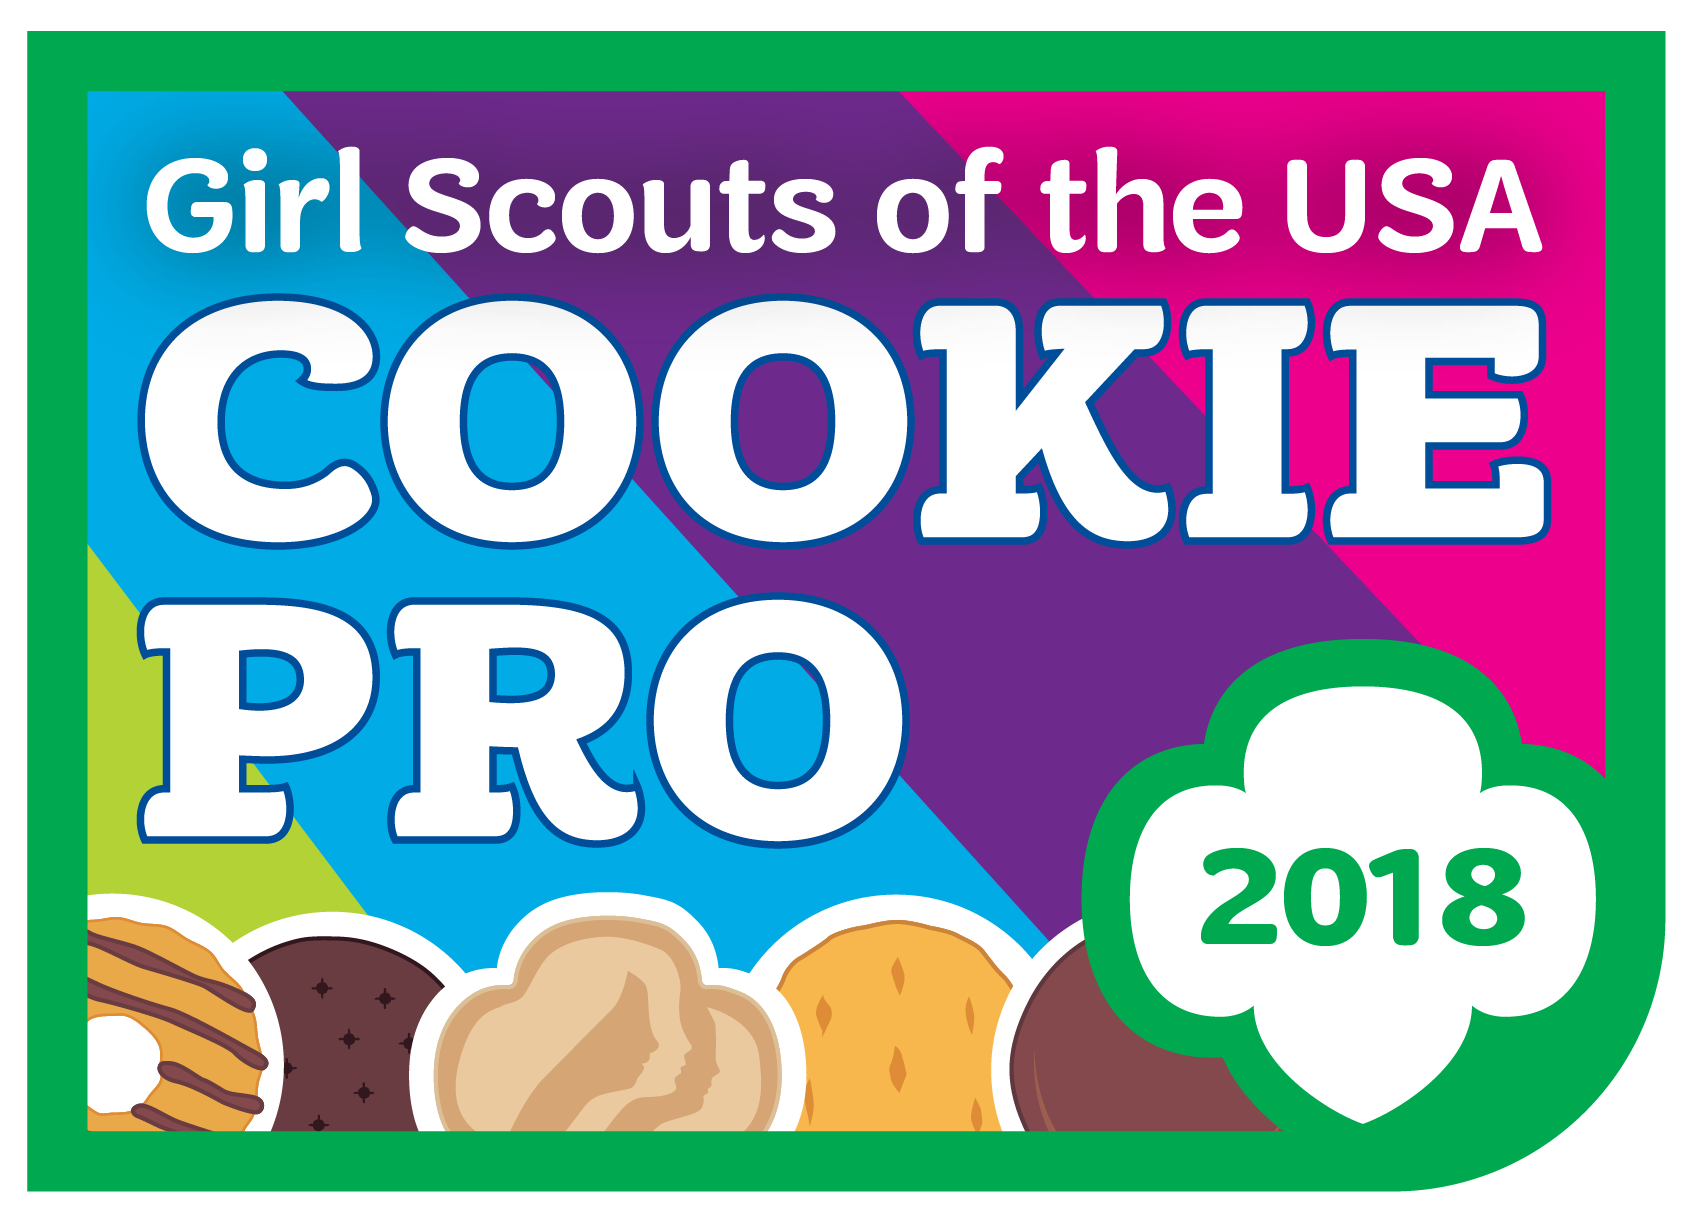 Cookie Pro - Scouts on